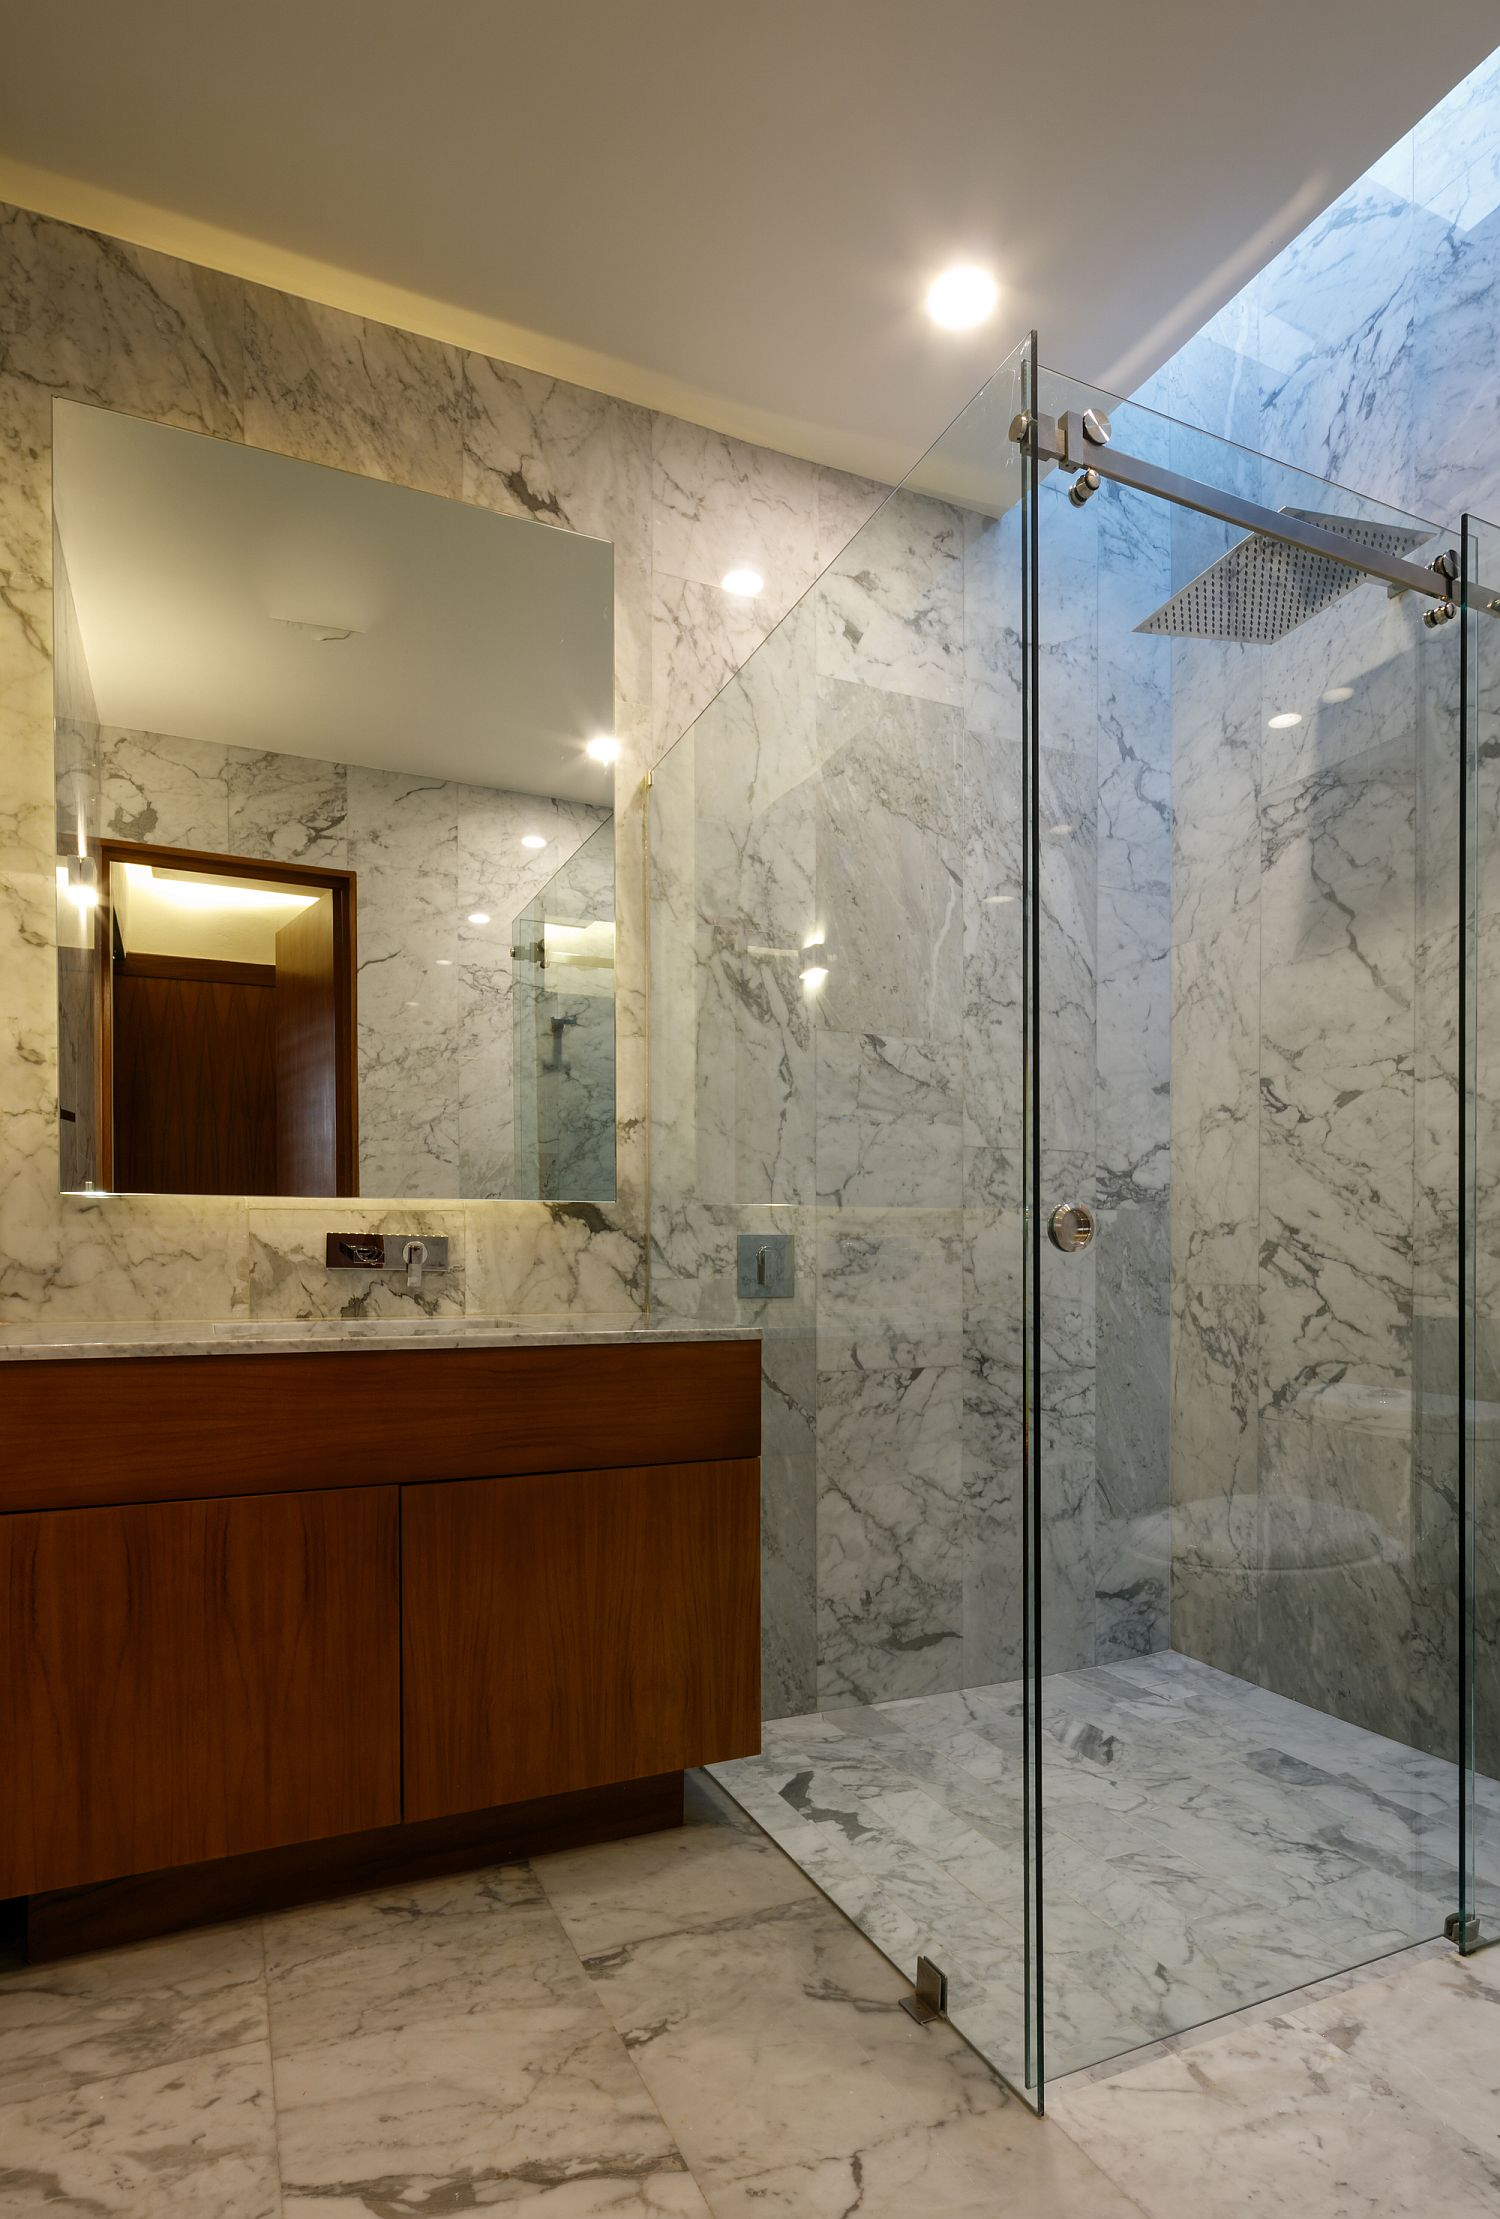 Contemporary bathroom in stone with corner glass shower area